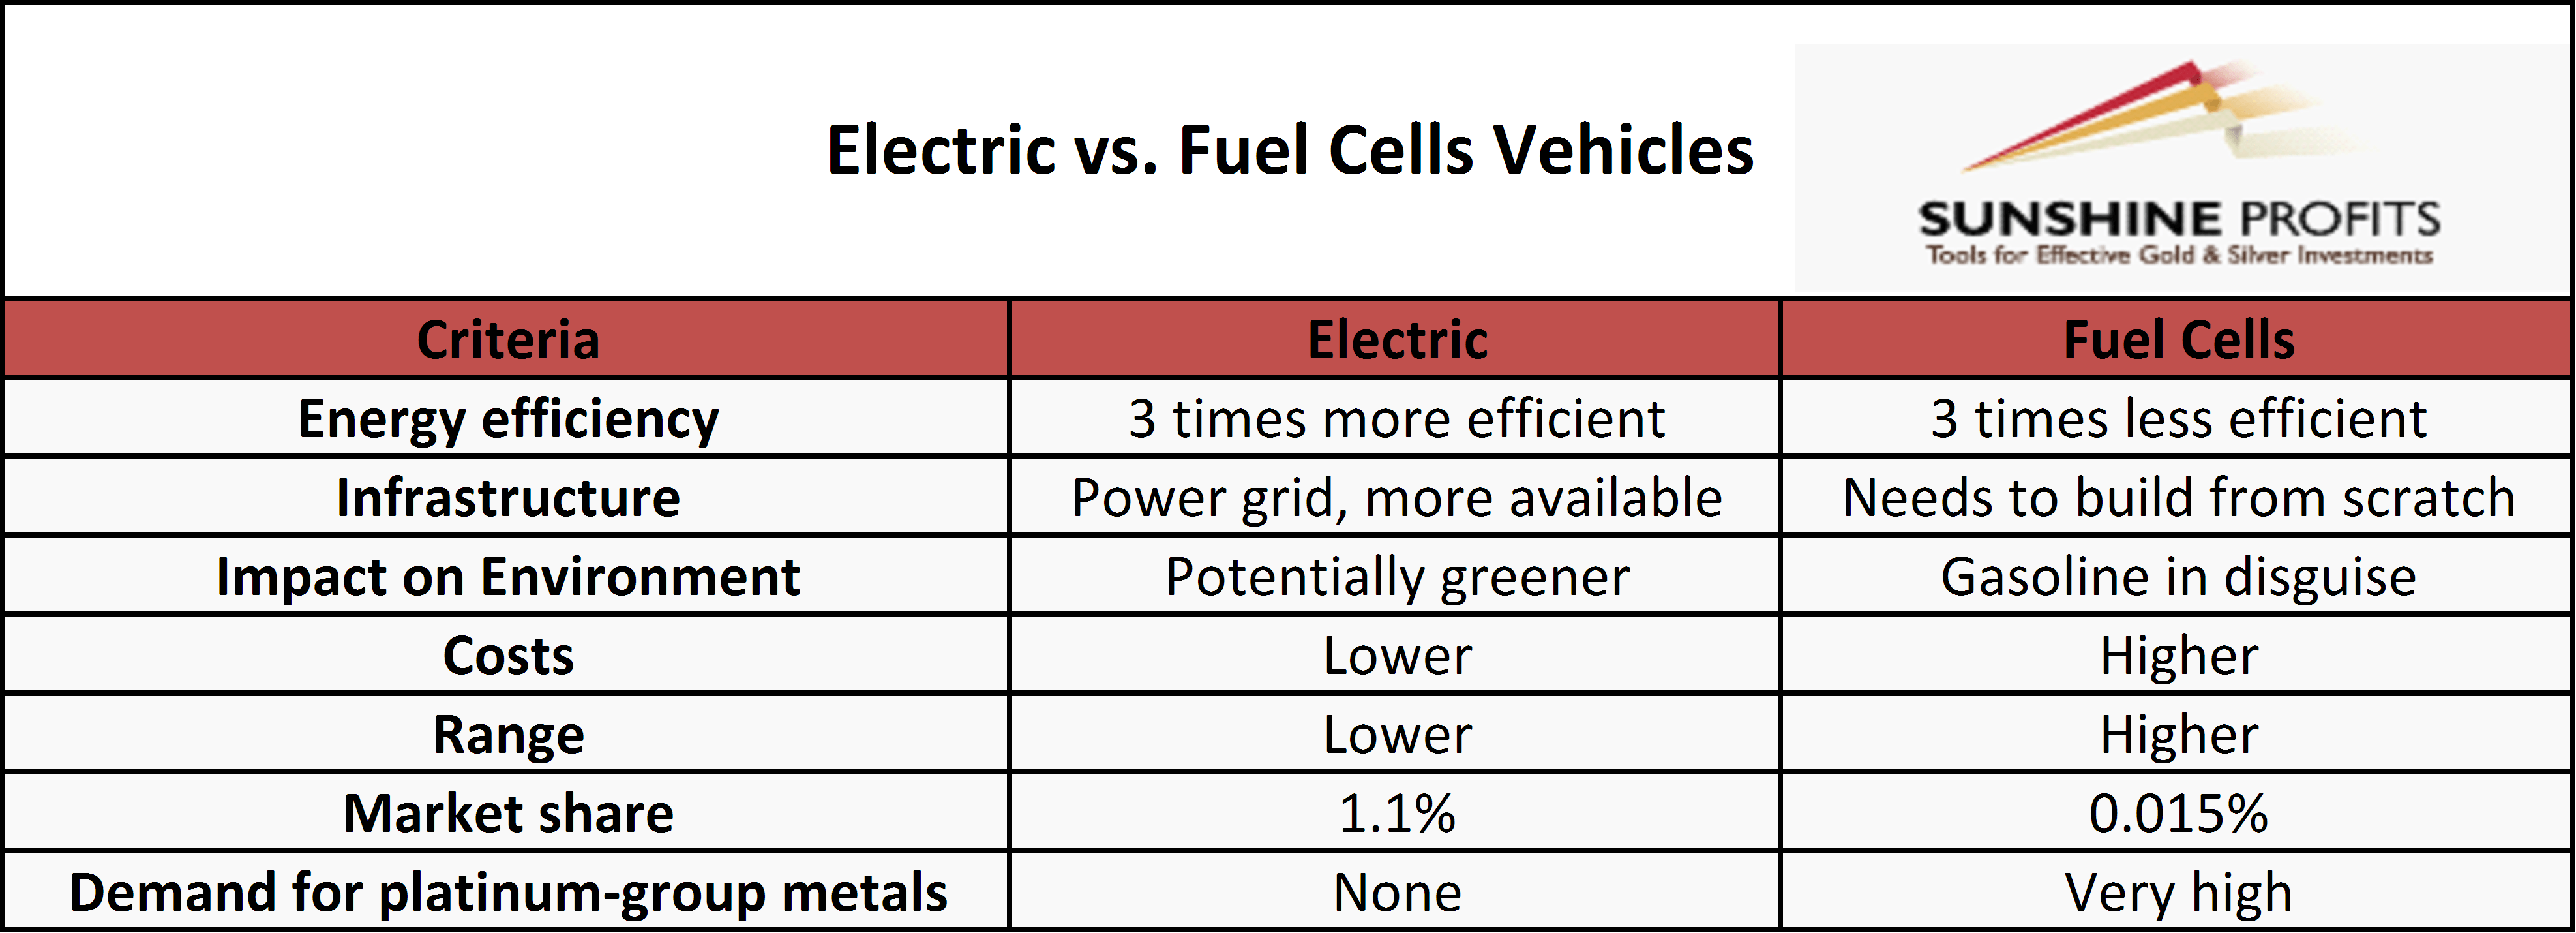 How Much Will Driving an Electric Car Save You